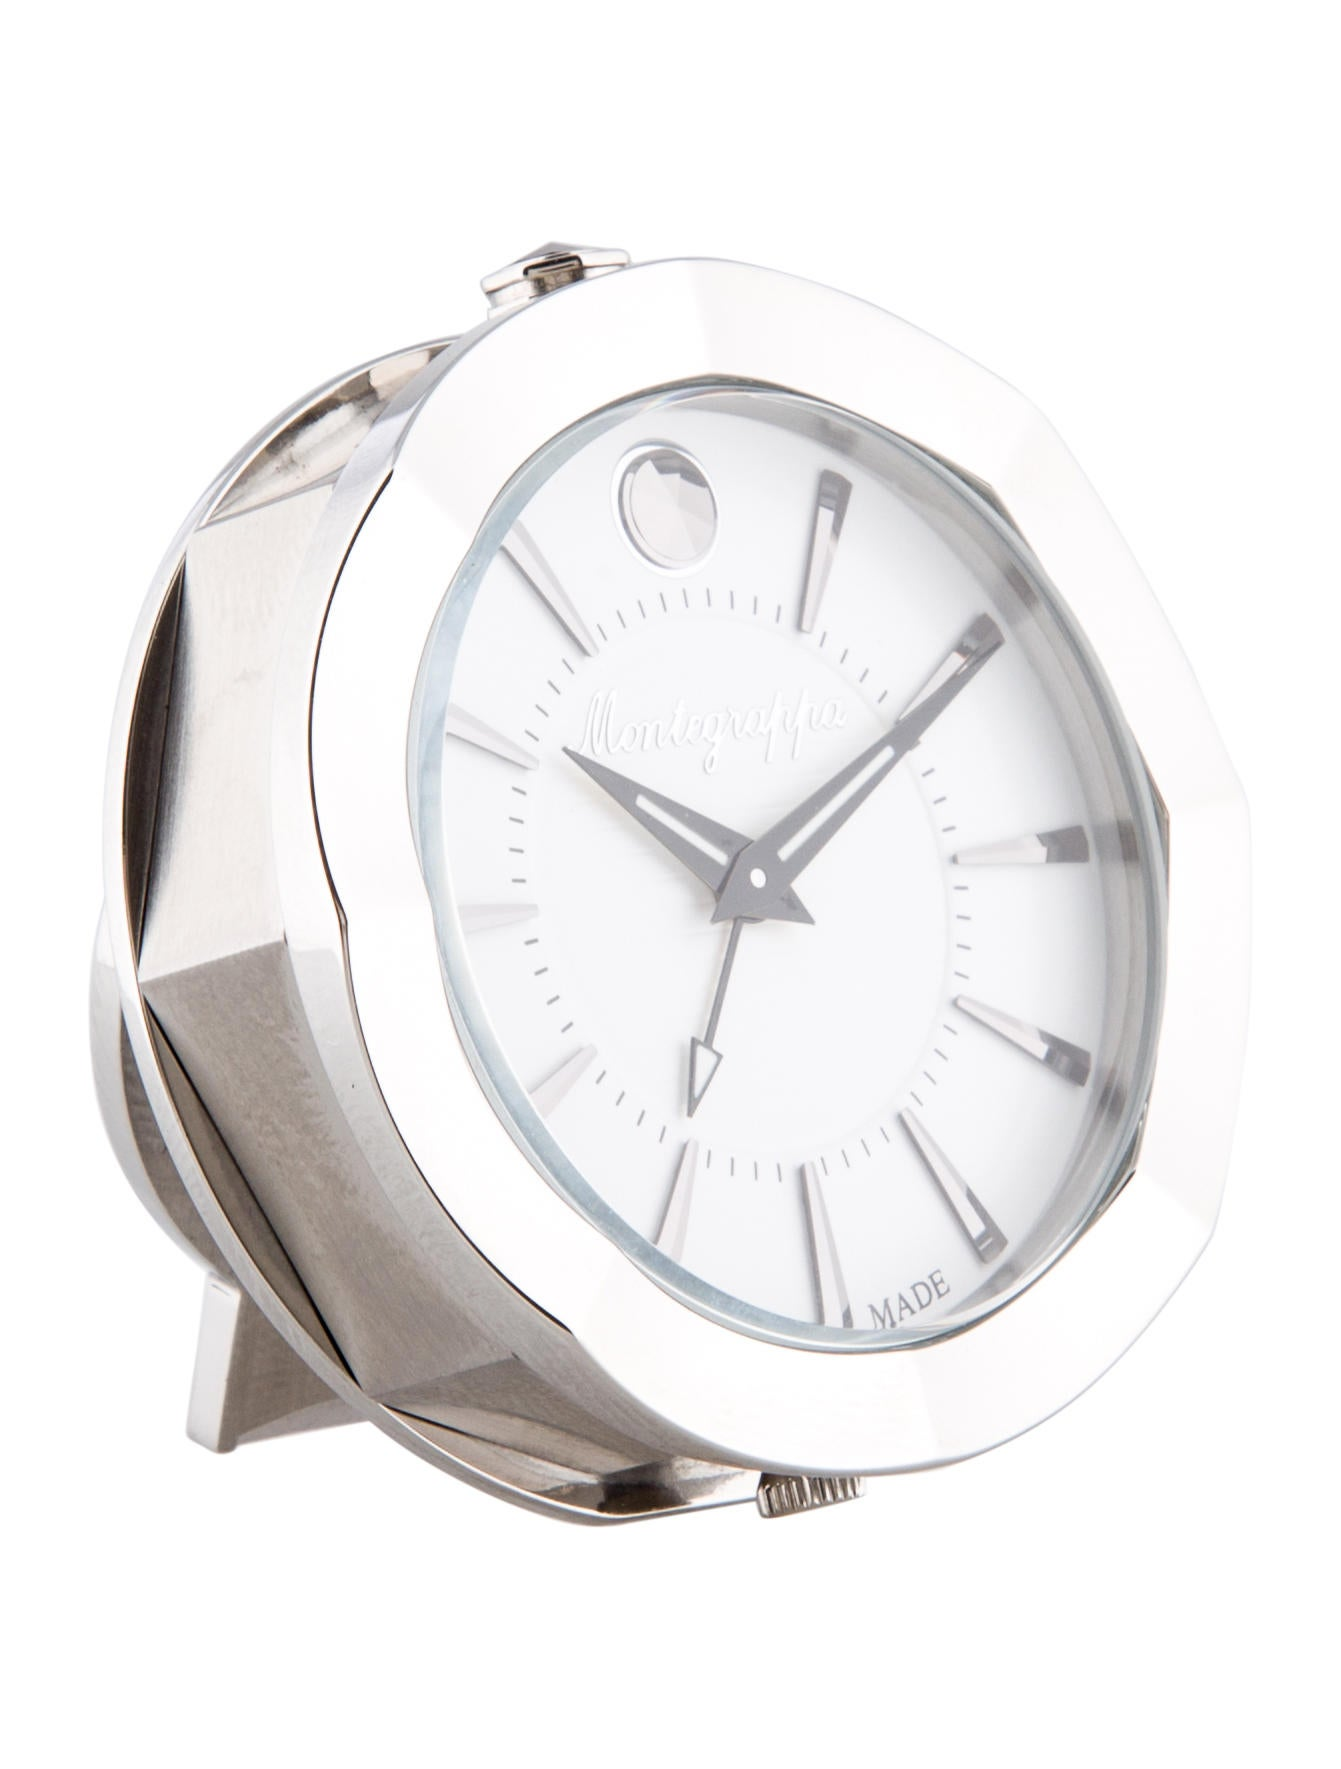 Montegrappa Stainless Steel Travel Clock Decor And